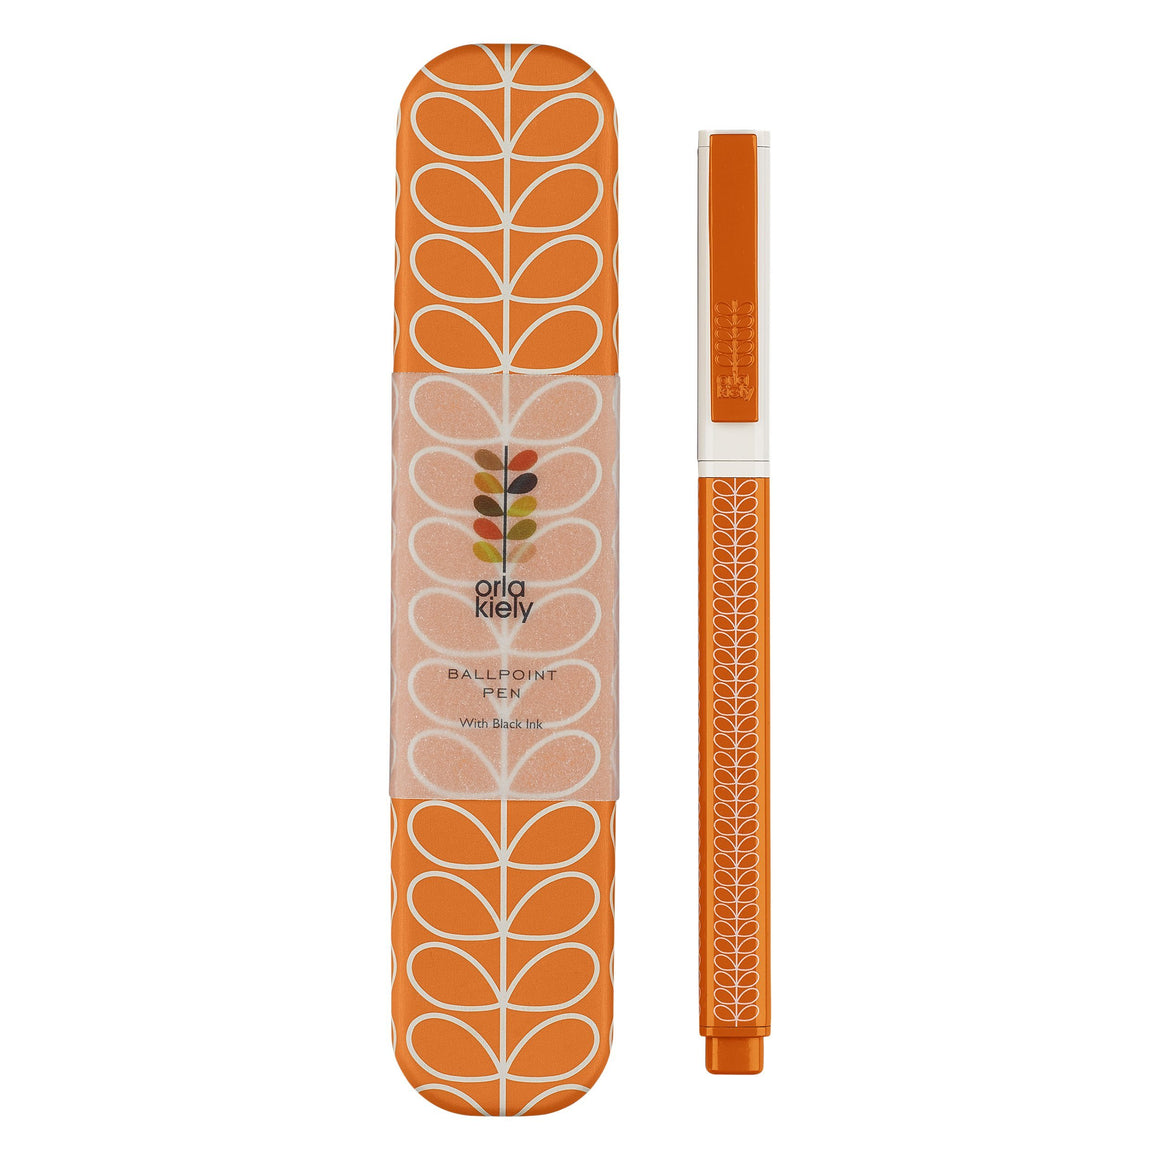 Orla kiely Linear Stem Ballpoint Pen in Orange Ballpoint pen Bouchic